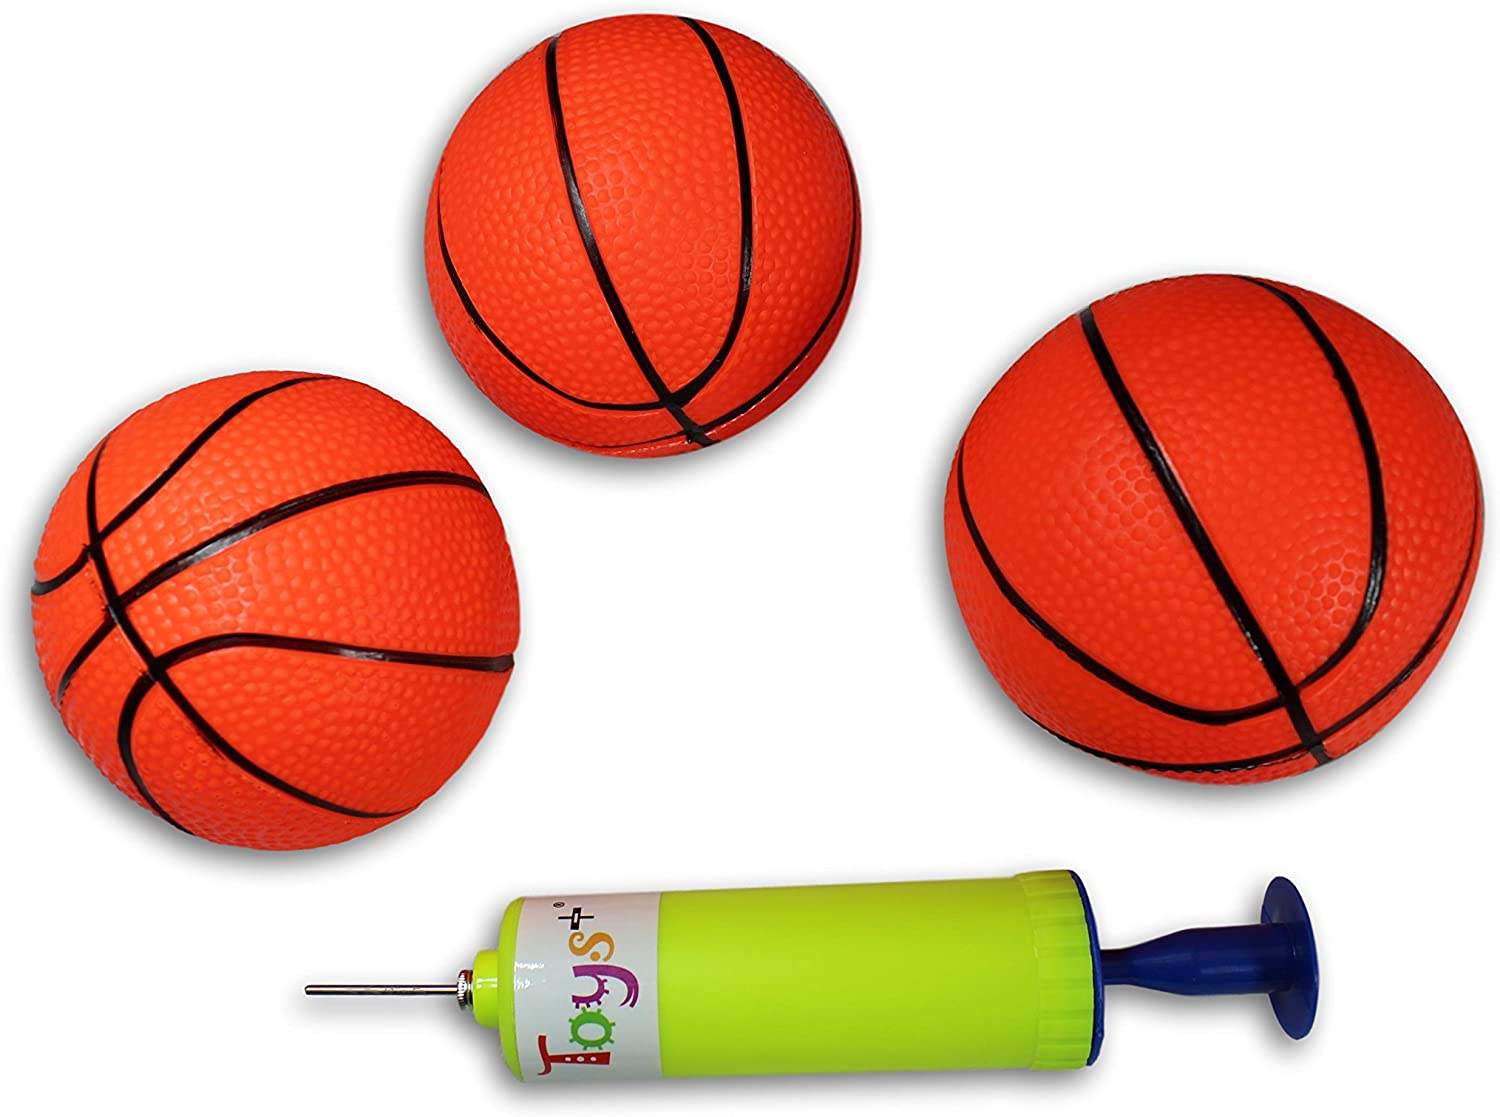 Toys+ 3 Pack! Inflatable Mini Basketballs Includes Pump and Need